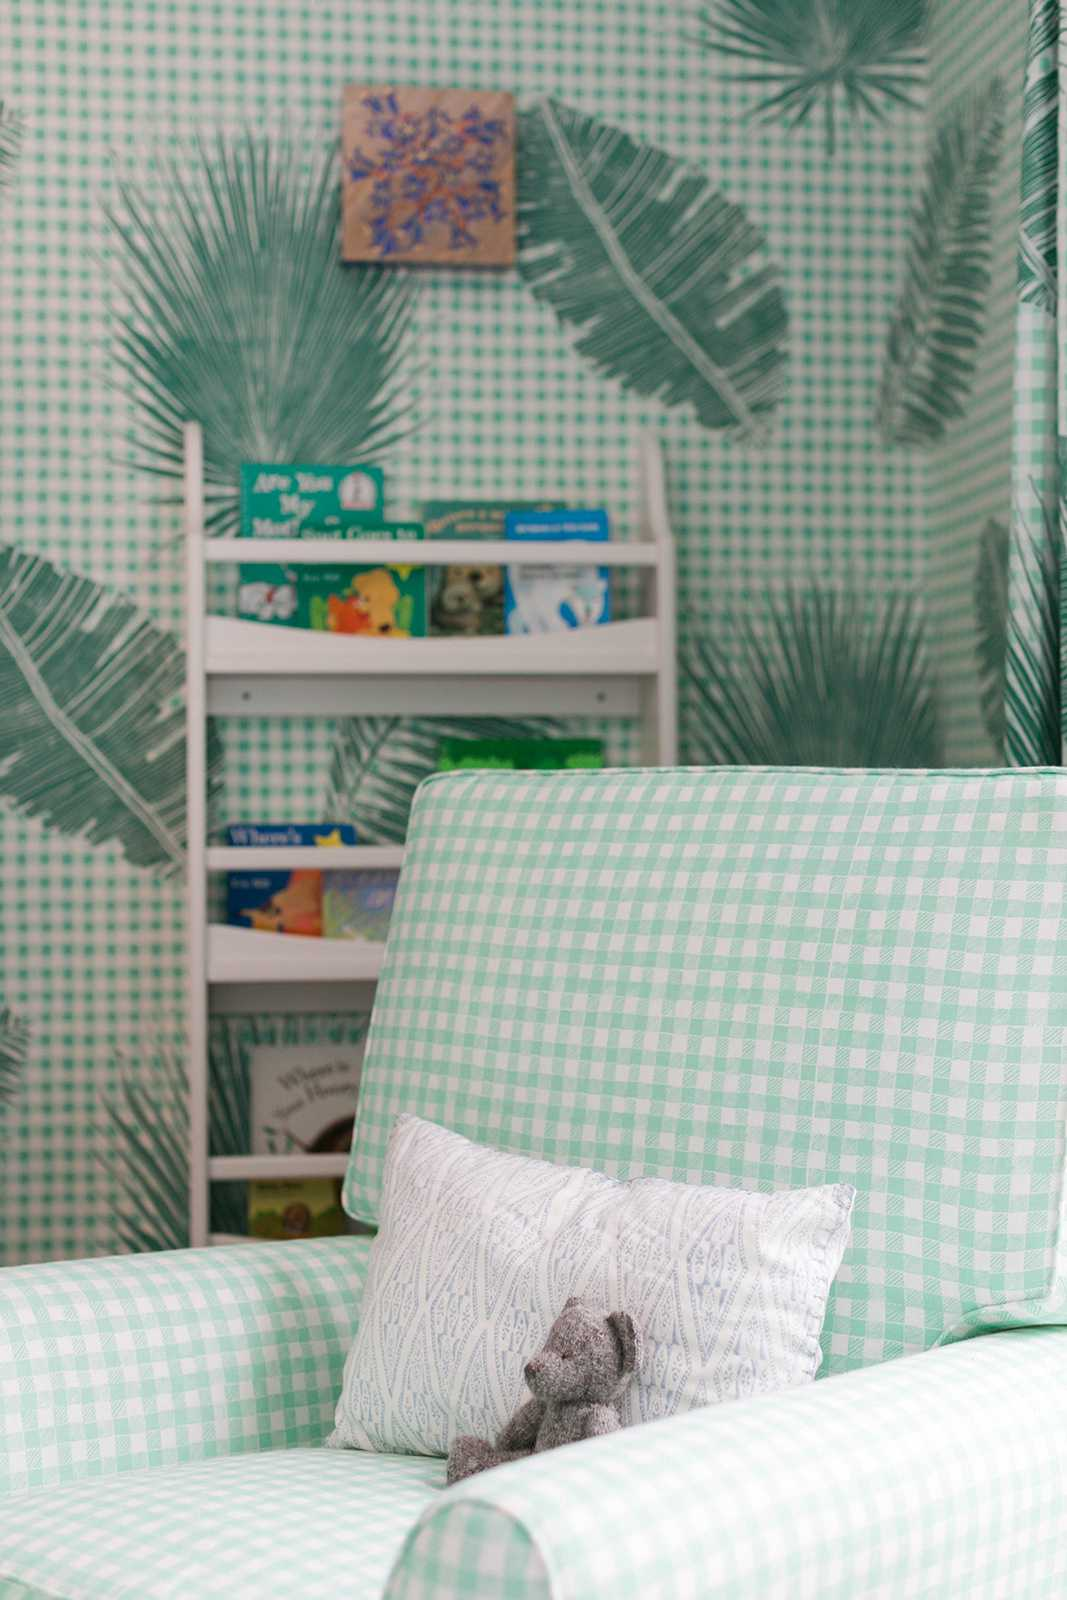 Block Print Gingham Fabric in Green, Interiors by Sharon Lee, Photo by Mekina Saylor